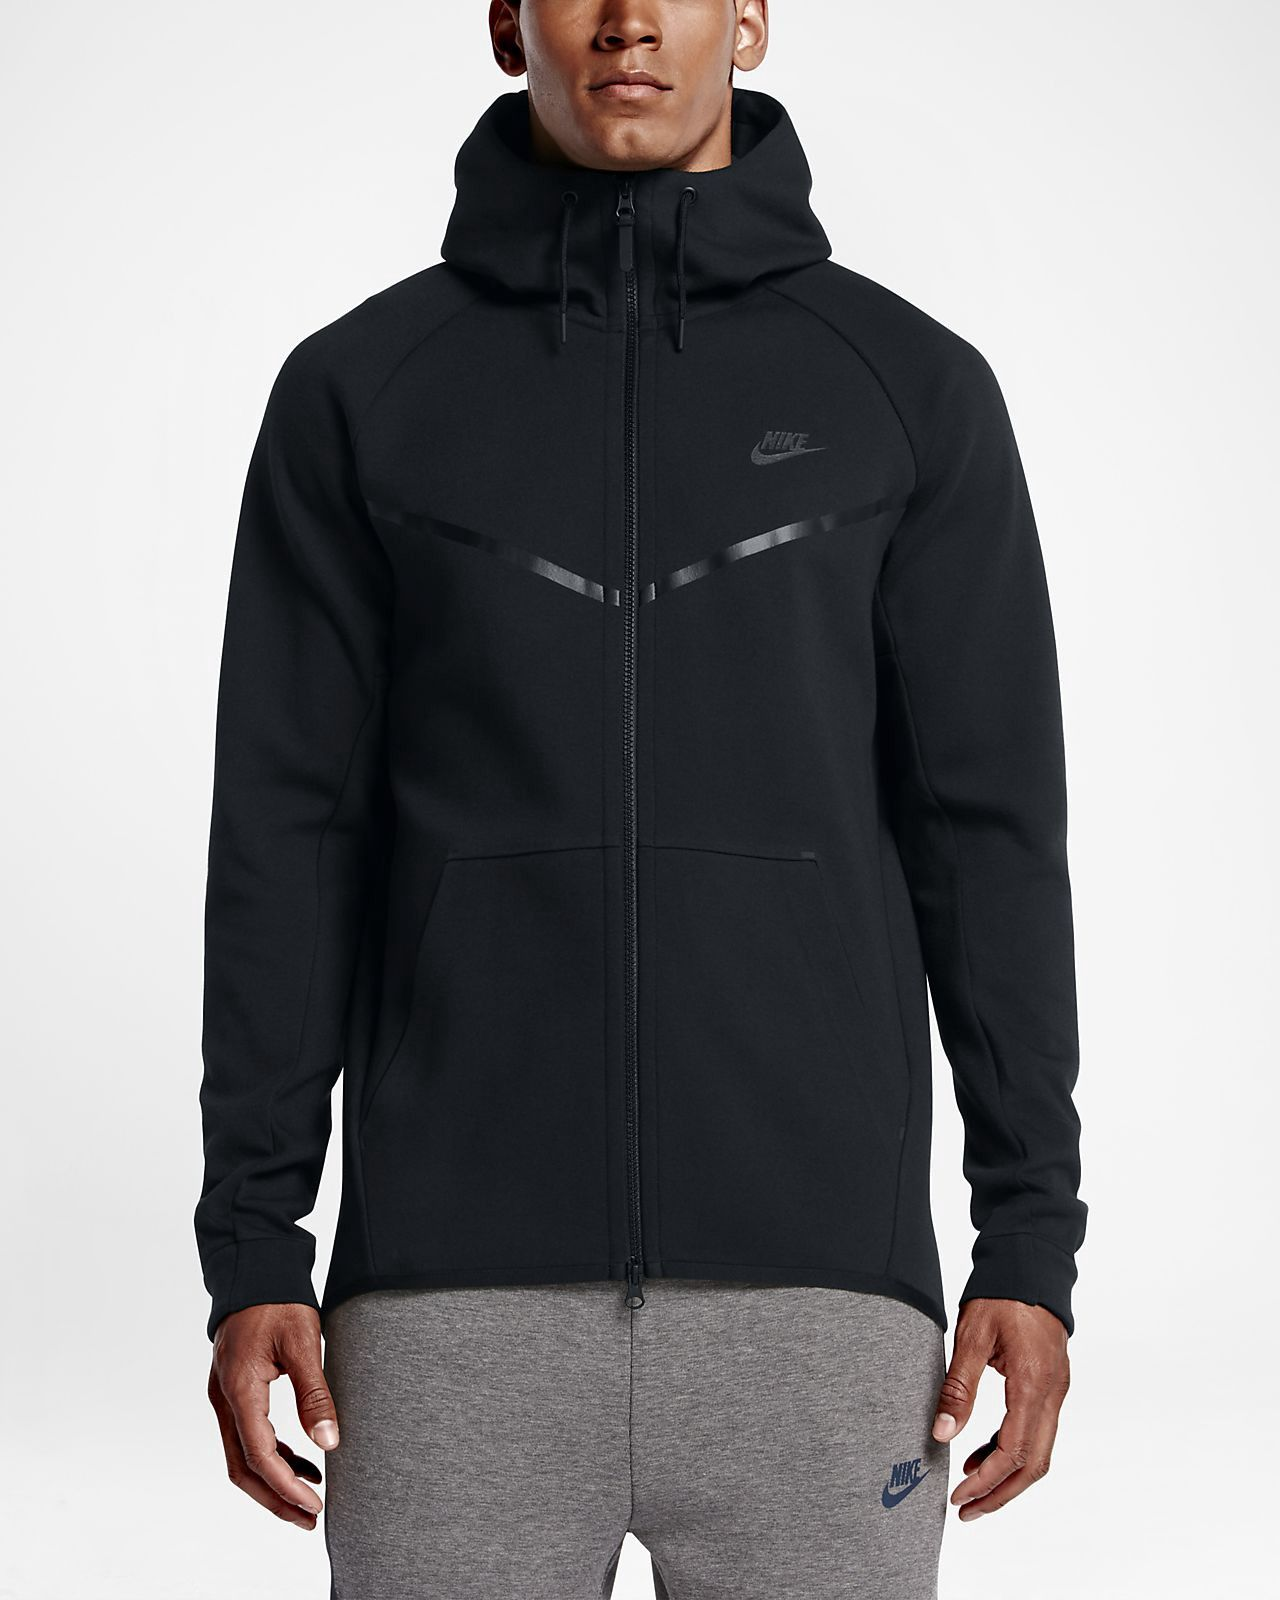 Nike Sportswear Tech Fleece Windrunner Men s Full-Zip Hoodie - 2XL ... 40aa10282